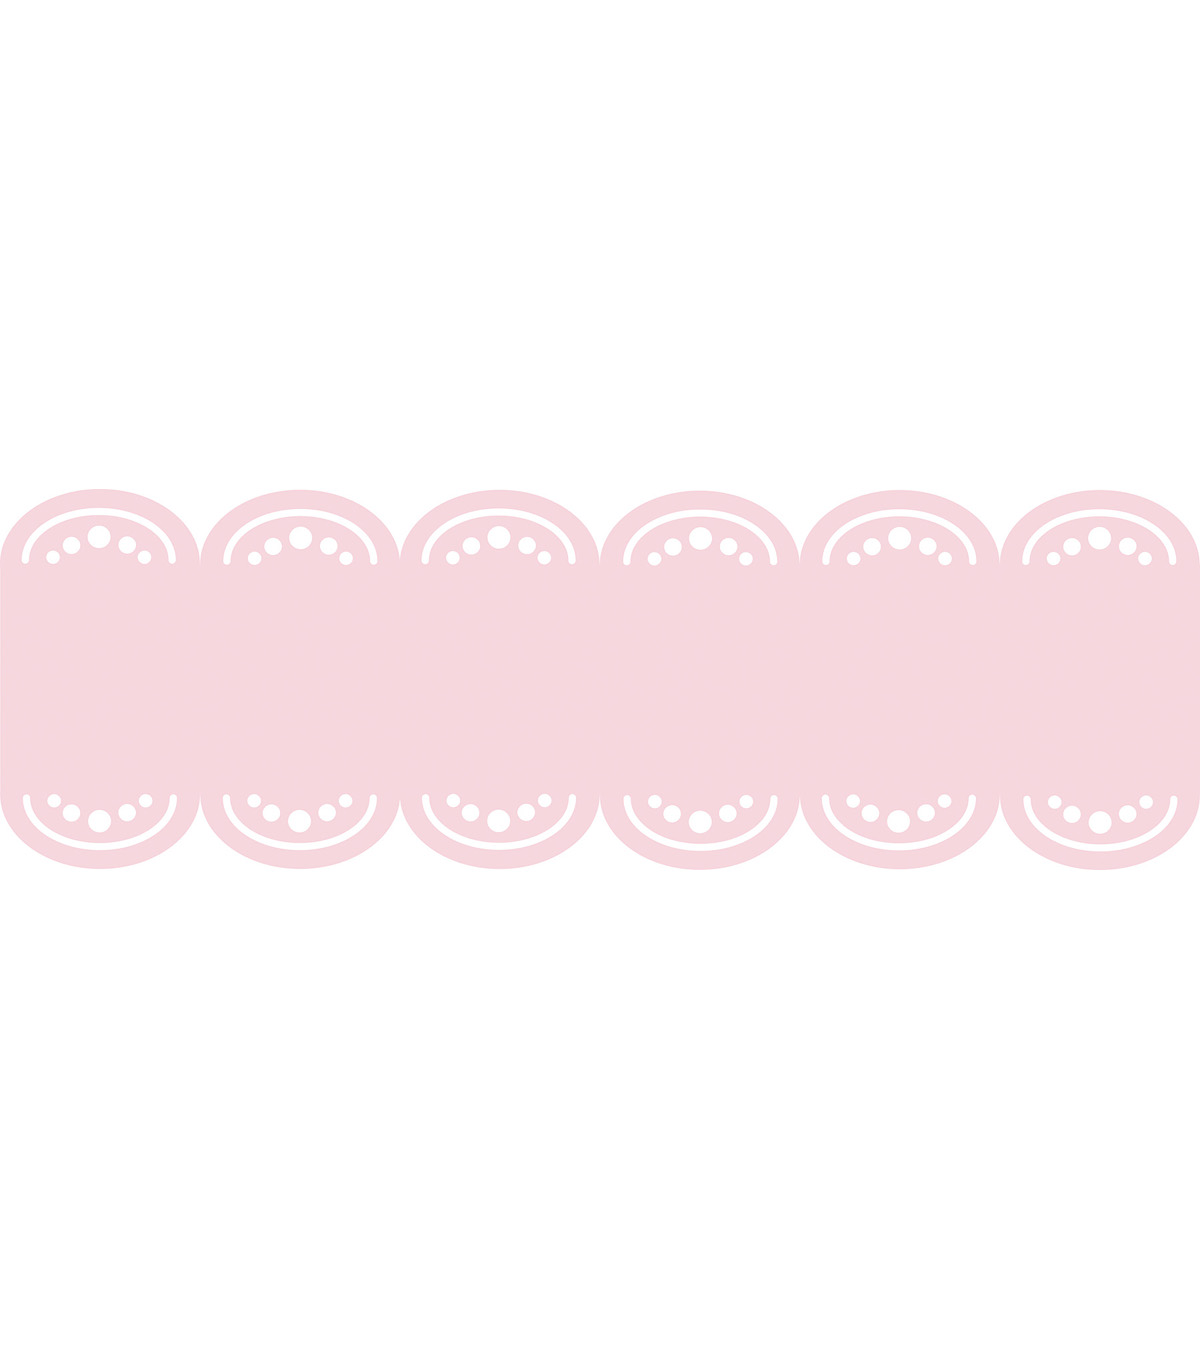 Wall Pops GiGi Pink Stripe Decals, 24 Feet